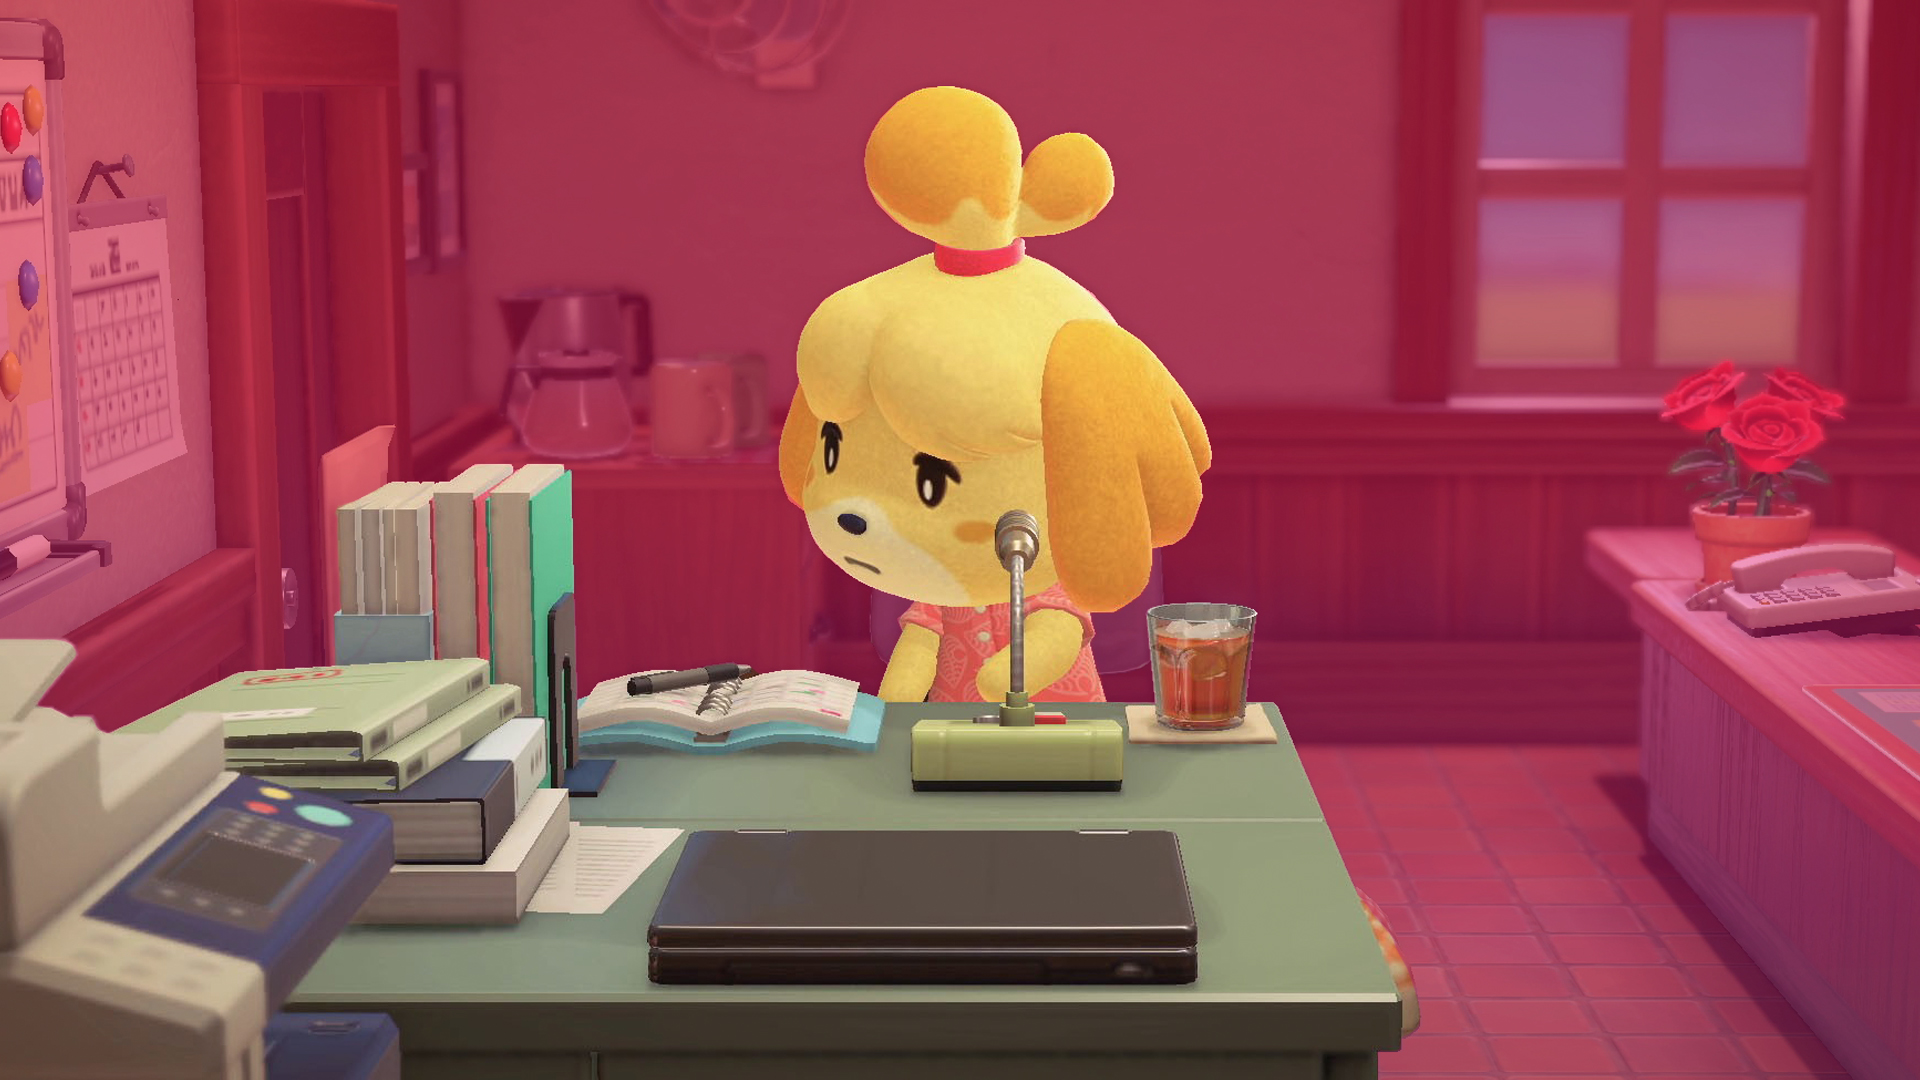 Isabelle, a character from Animal Crossing sits working at a desk, with a pink/purple treatment on the background